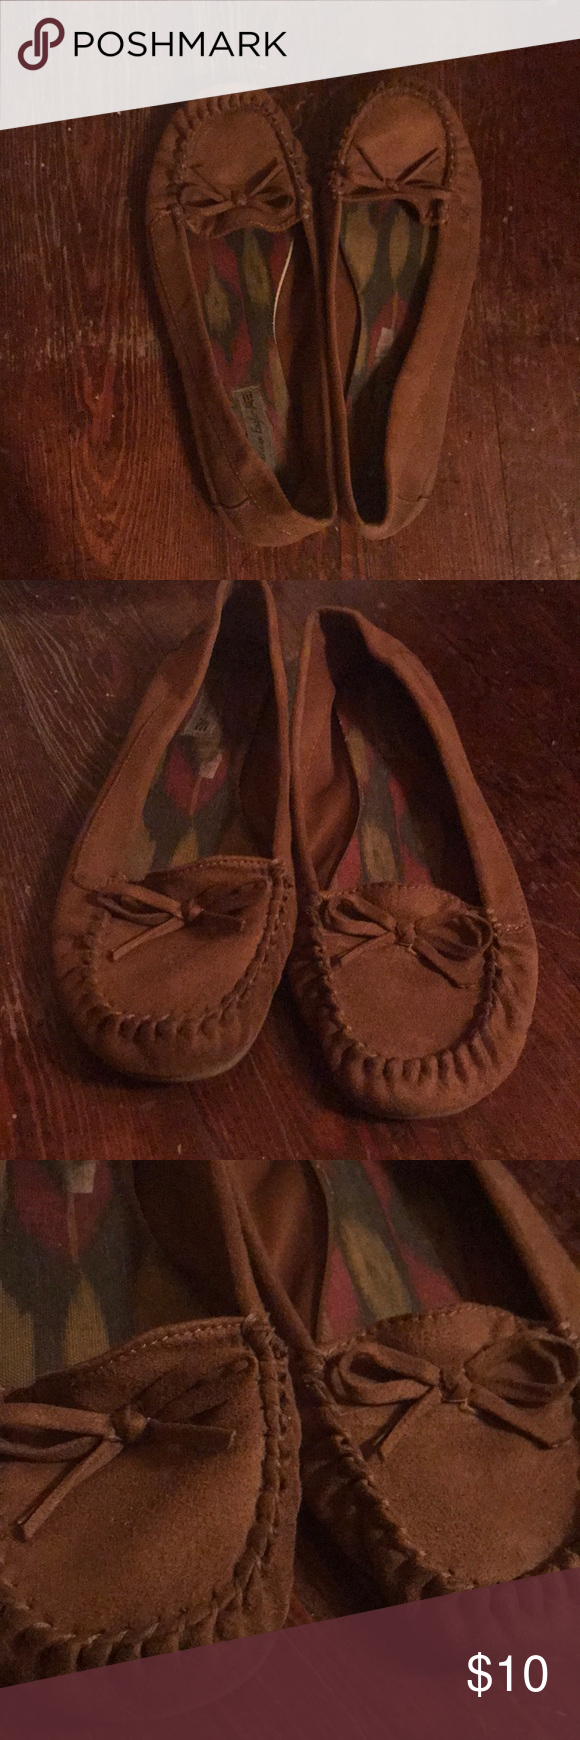 b11cc7c3f5a American Eagle Moccasins Tan Flat Lightly worn